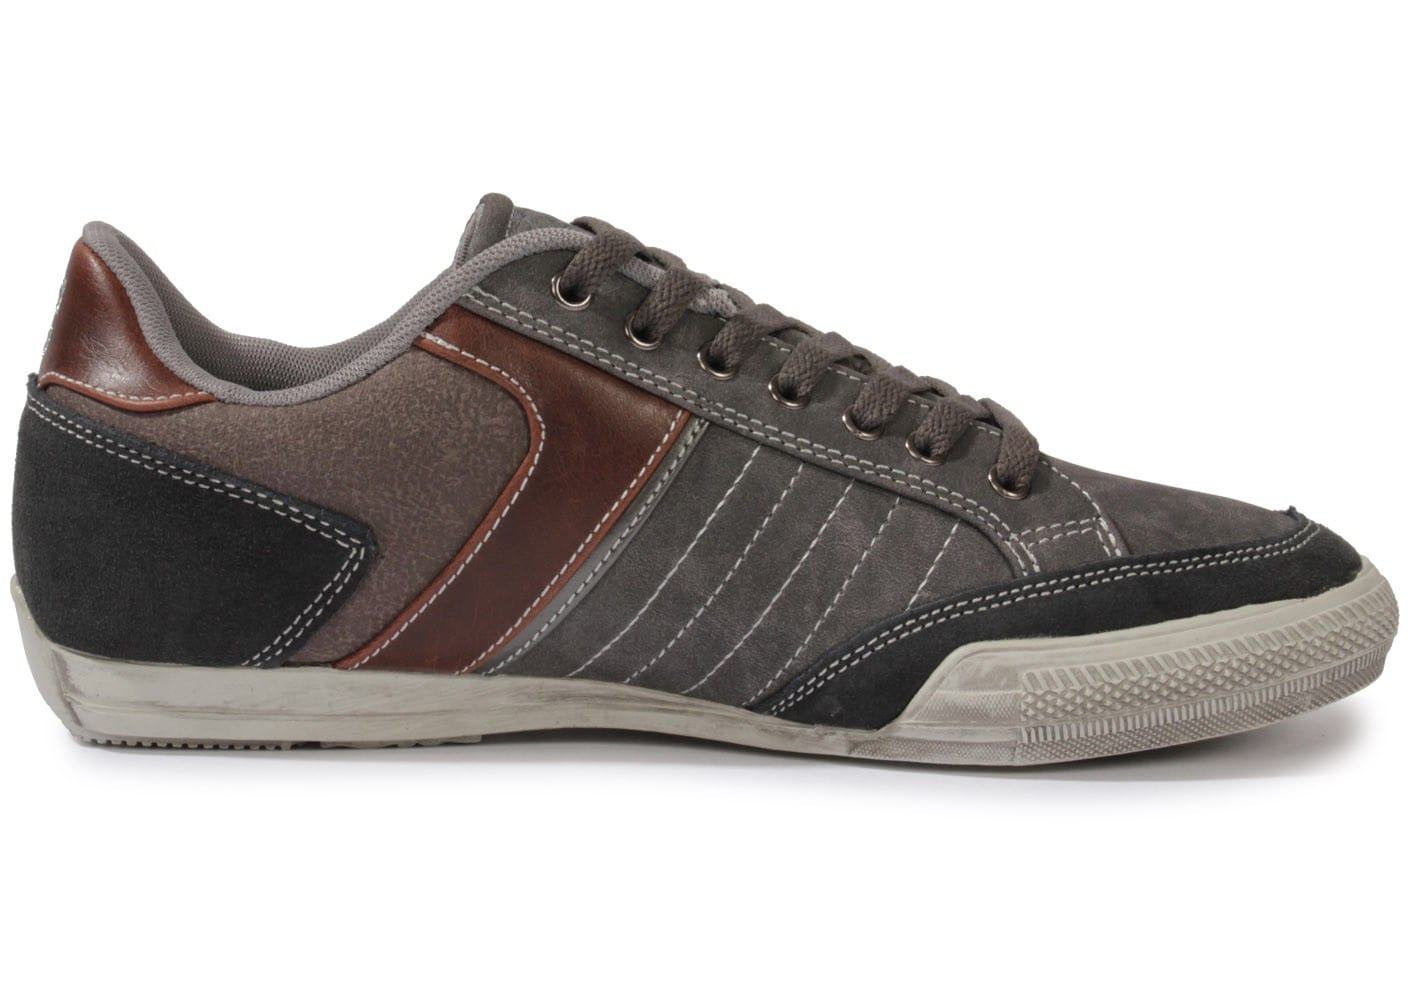 72ca99bc386d5 Carrera New Galles Grise - Chaussures Baskets homme - Chausport